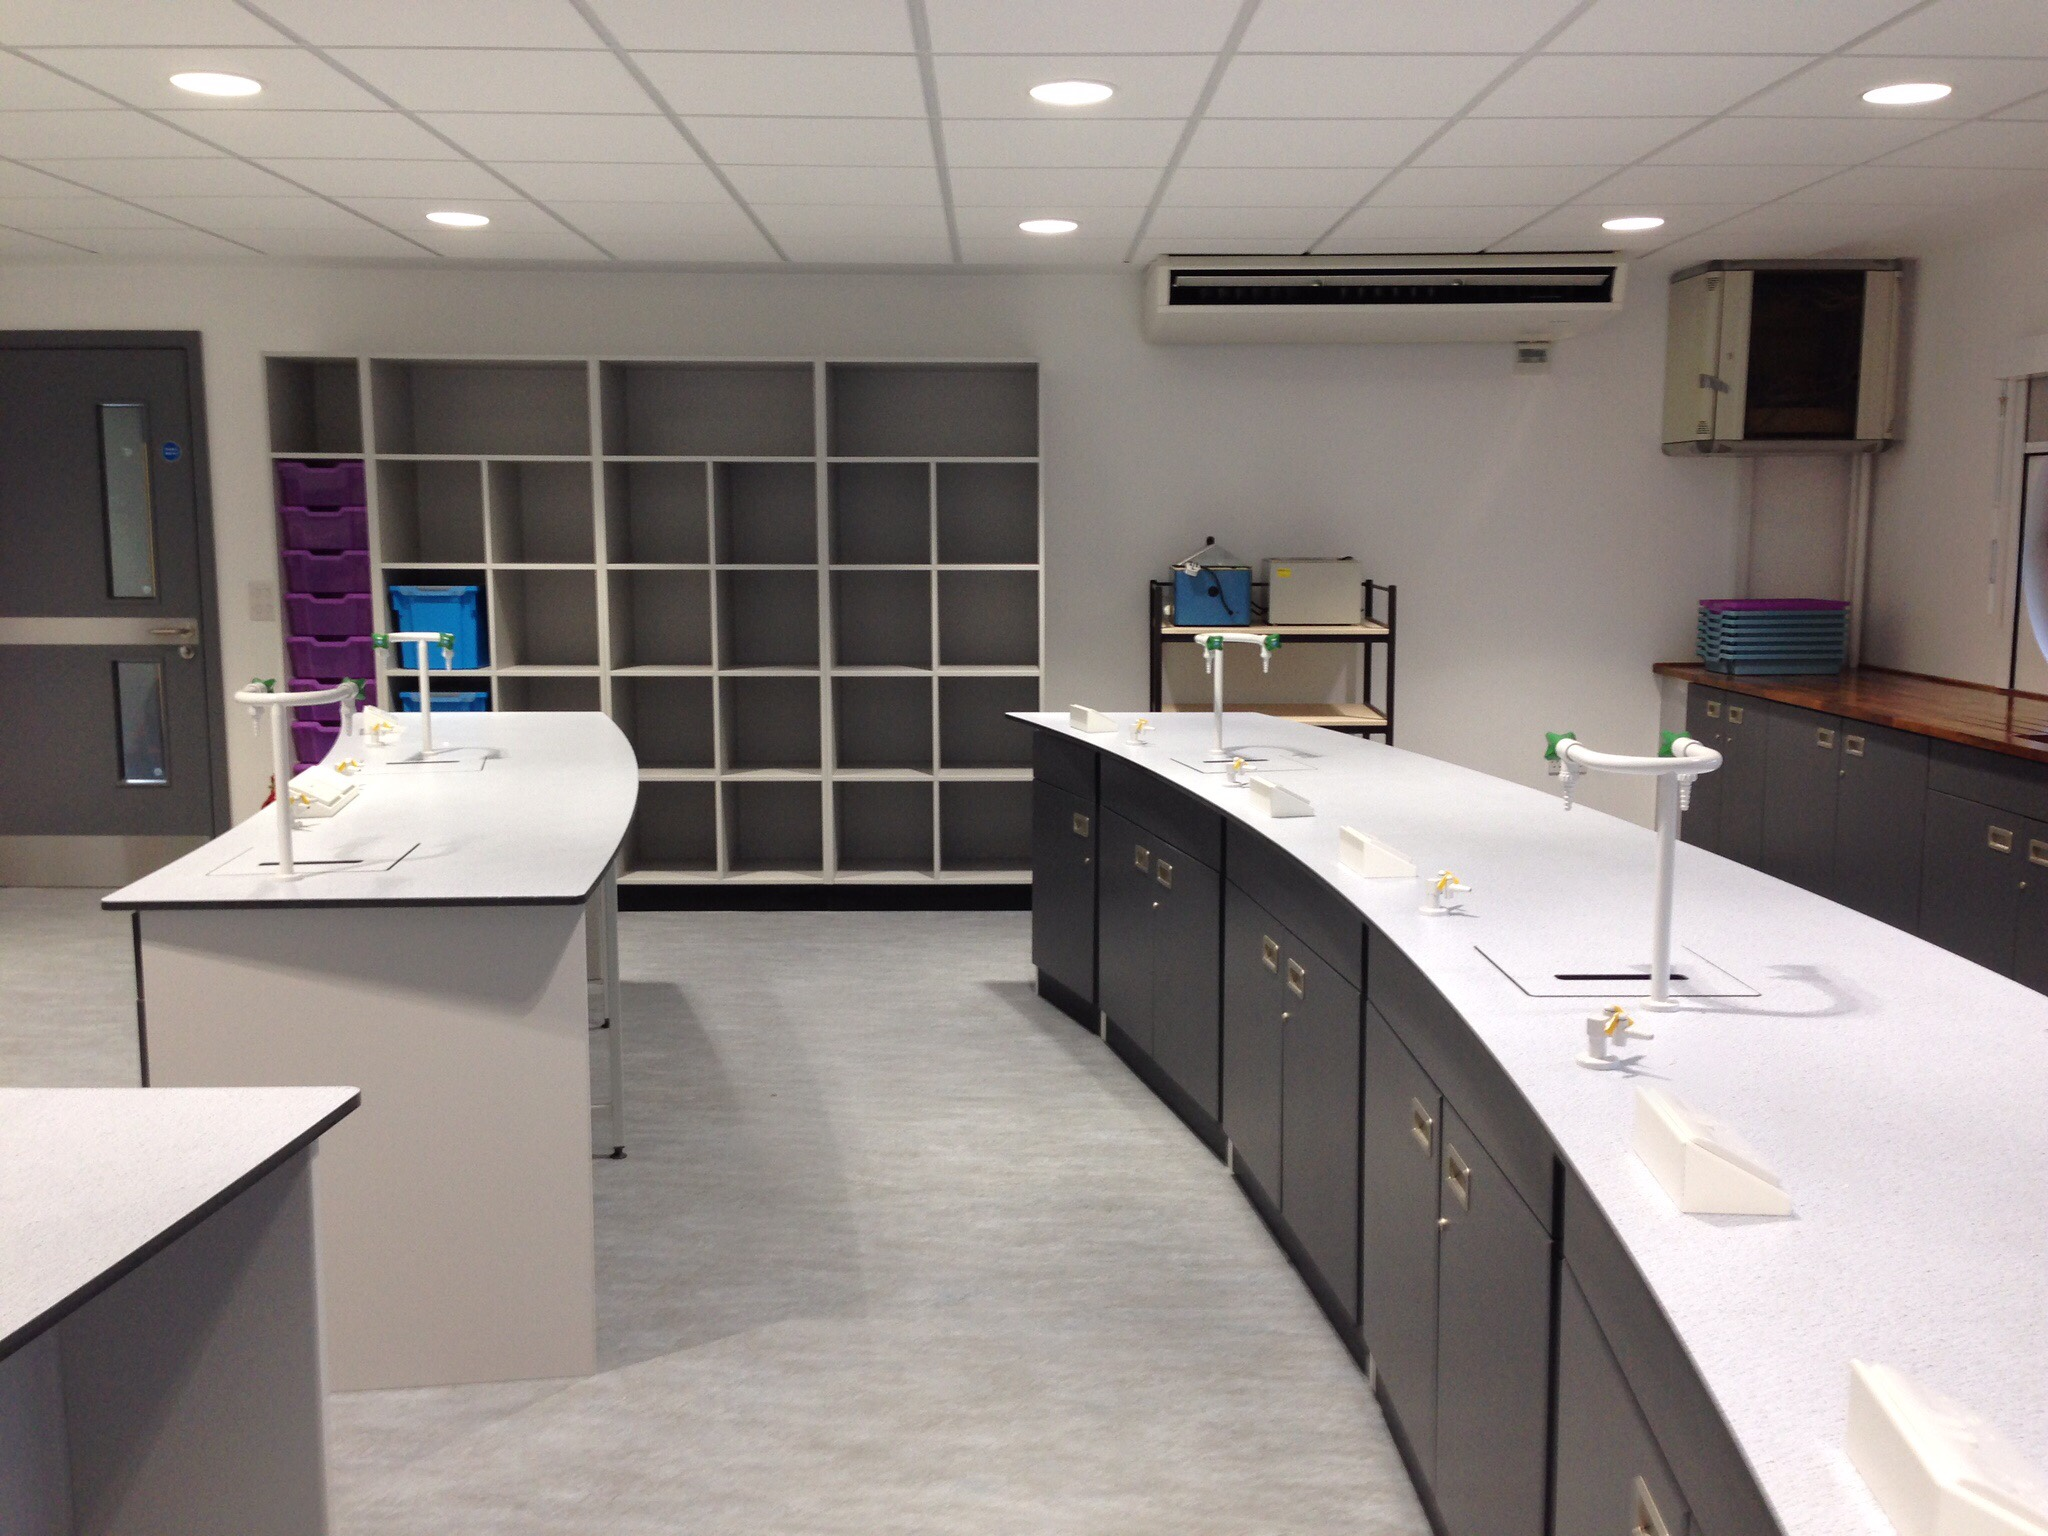 AJT Laboratory furniture Design Trespa Worktops School refurb